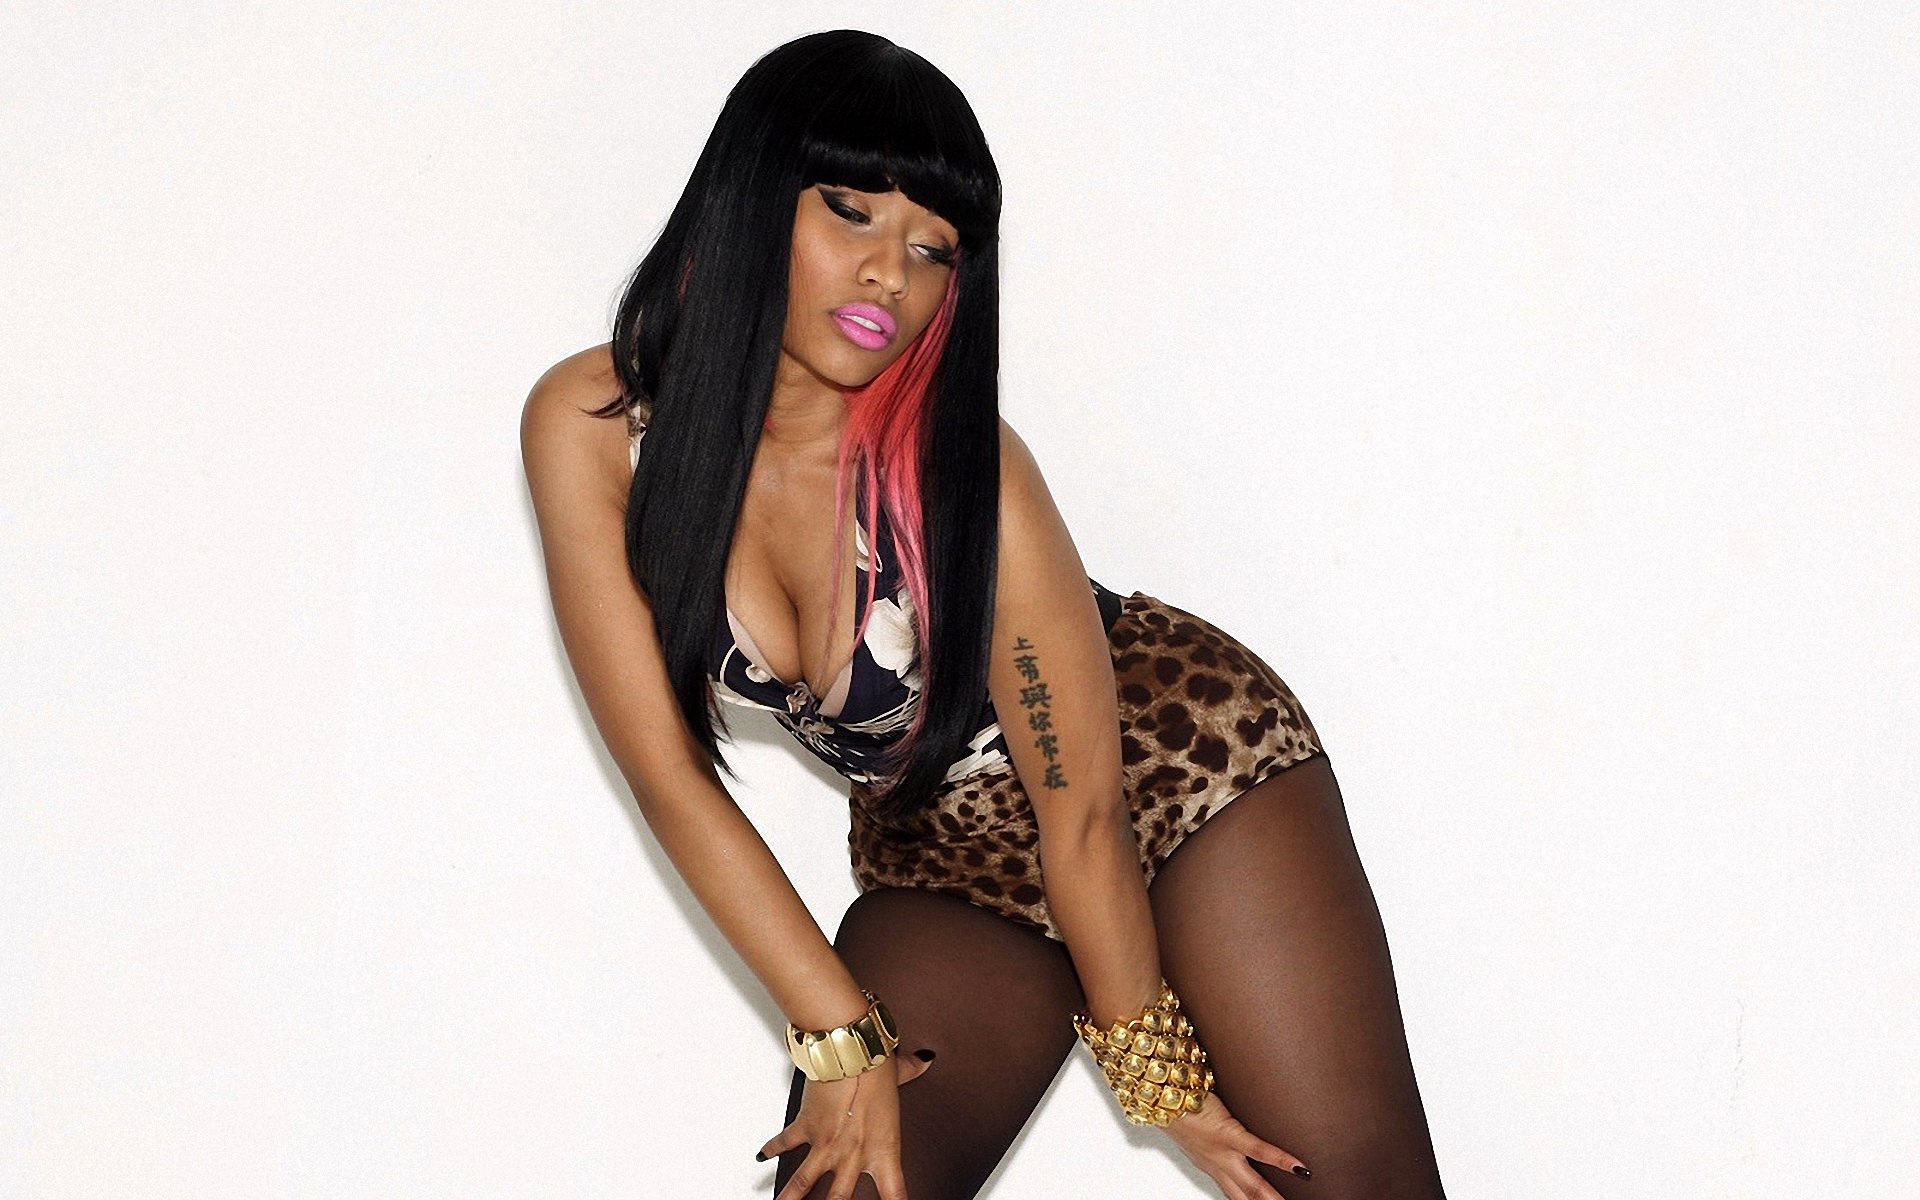 Hot nicki minaj wallpaper high definition high quality widescreen hot nicki minaj voltagebd Image collections